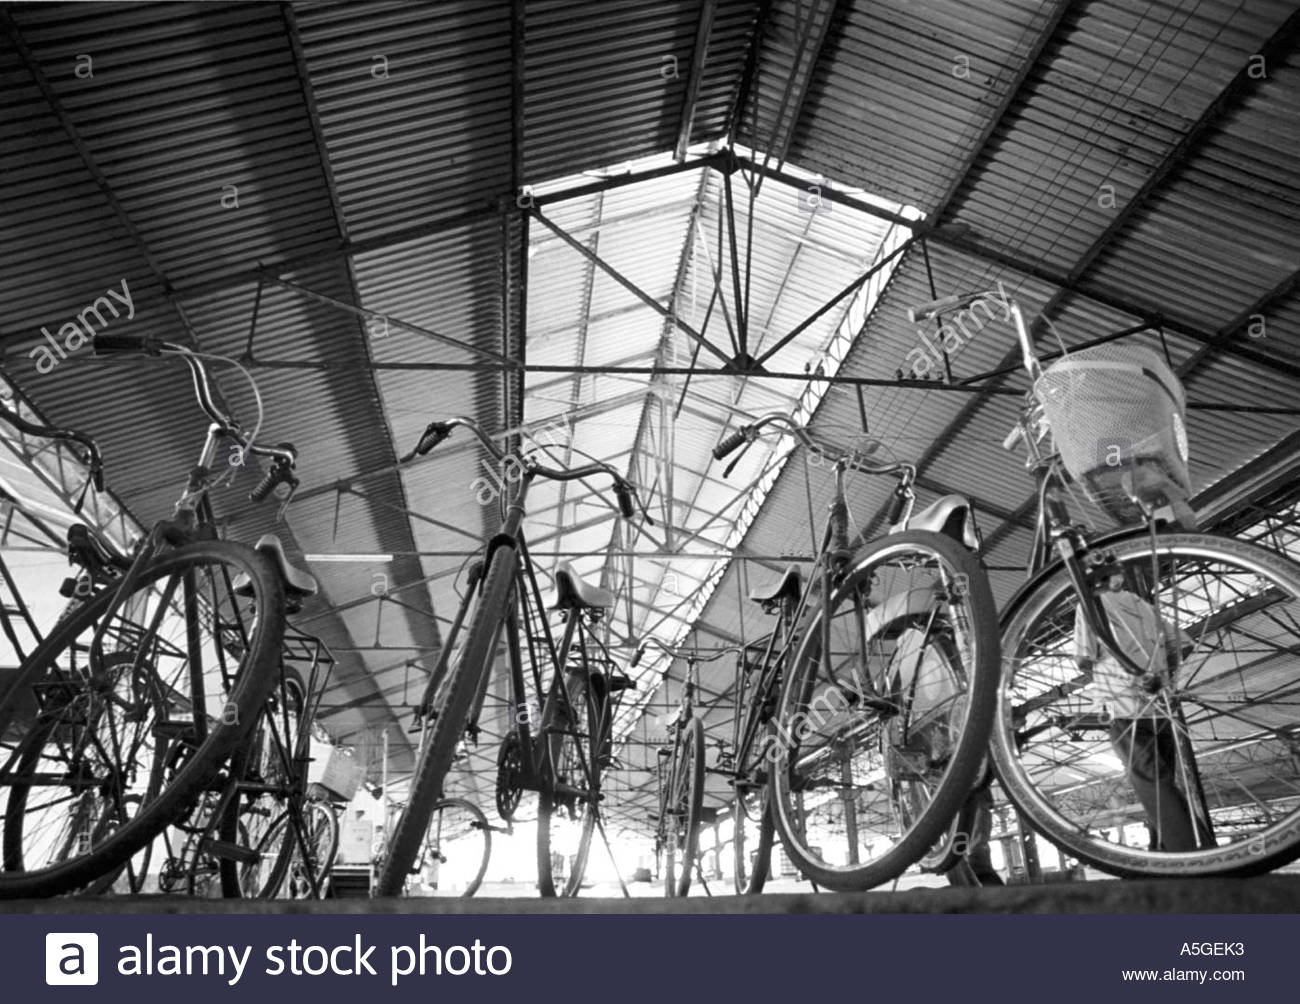 Bicycles parked in a shelter - Stock Image